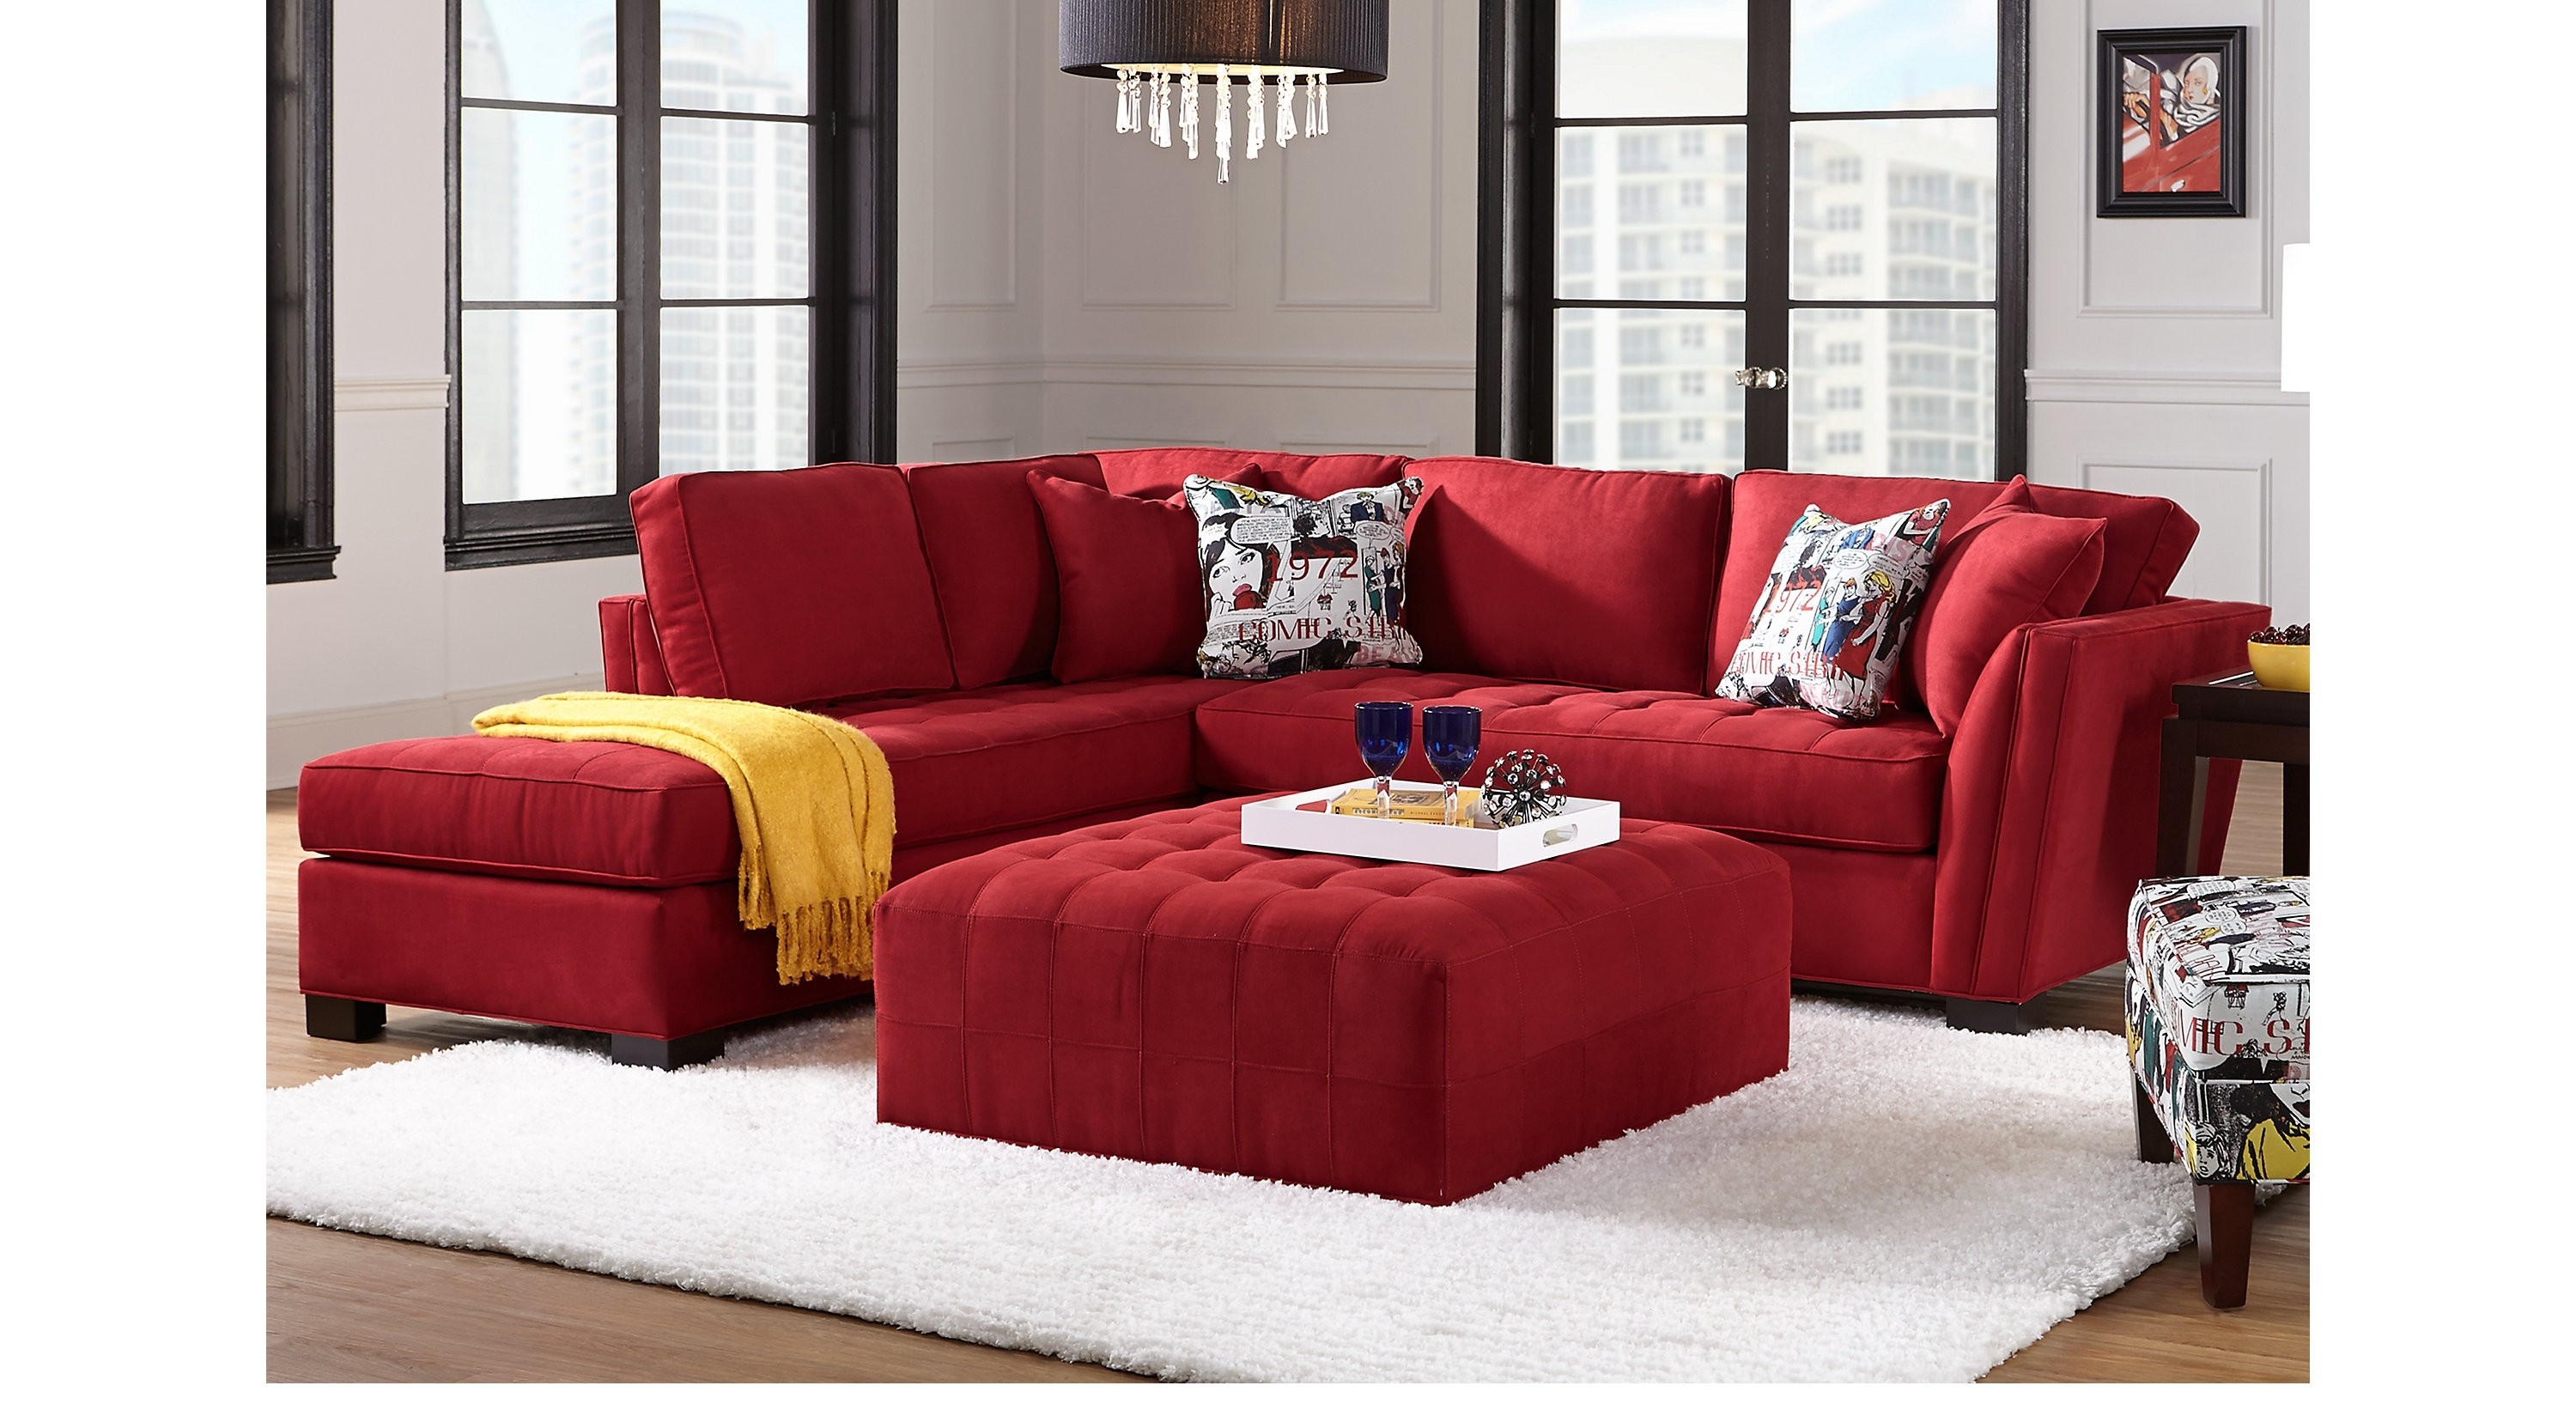 Cindy Crawford Home Sectionals Throughout Well Liked Red Sectional Sofas (View 3 of 20)